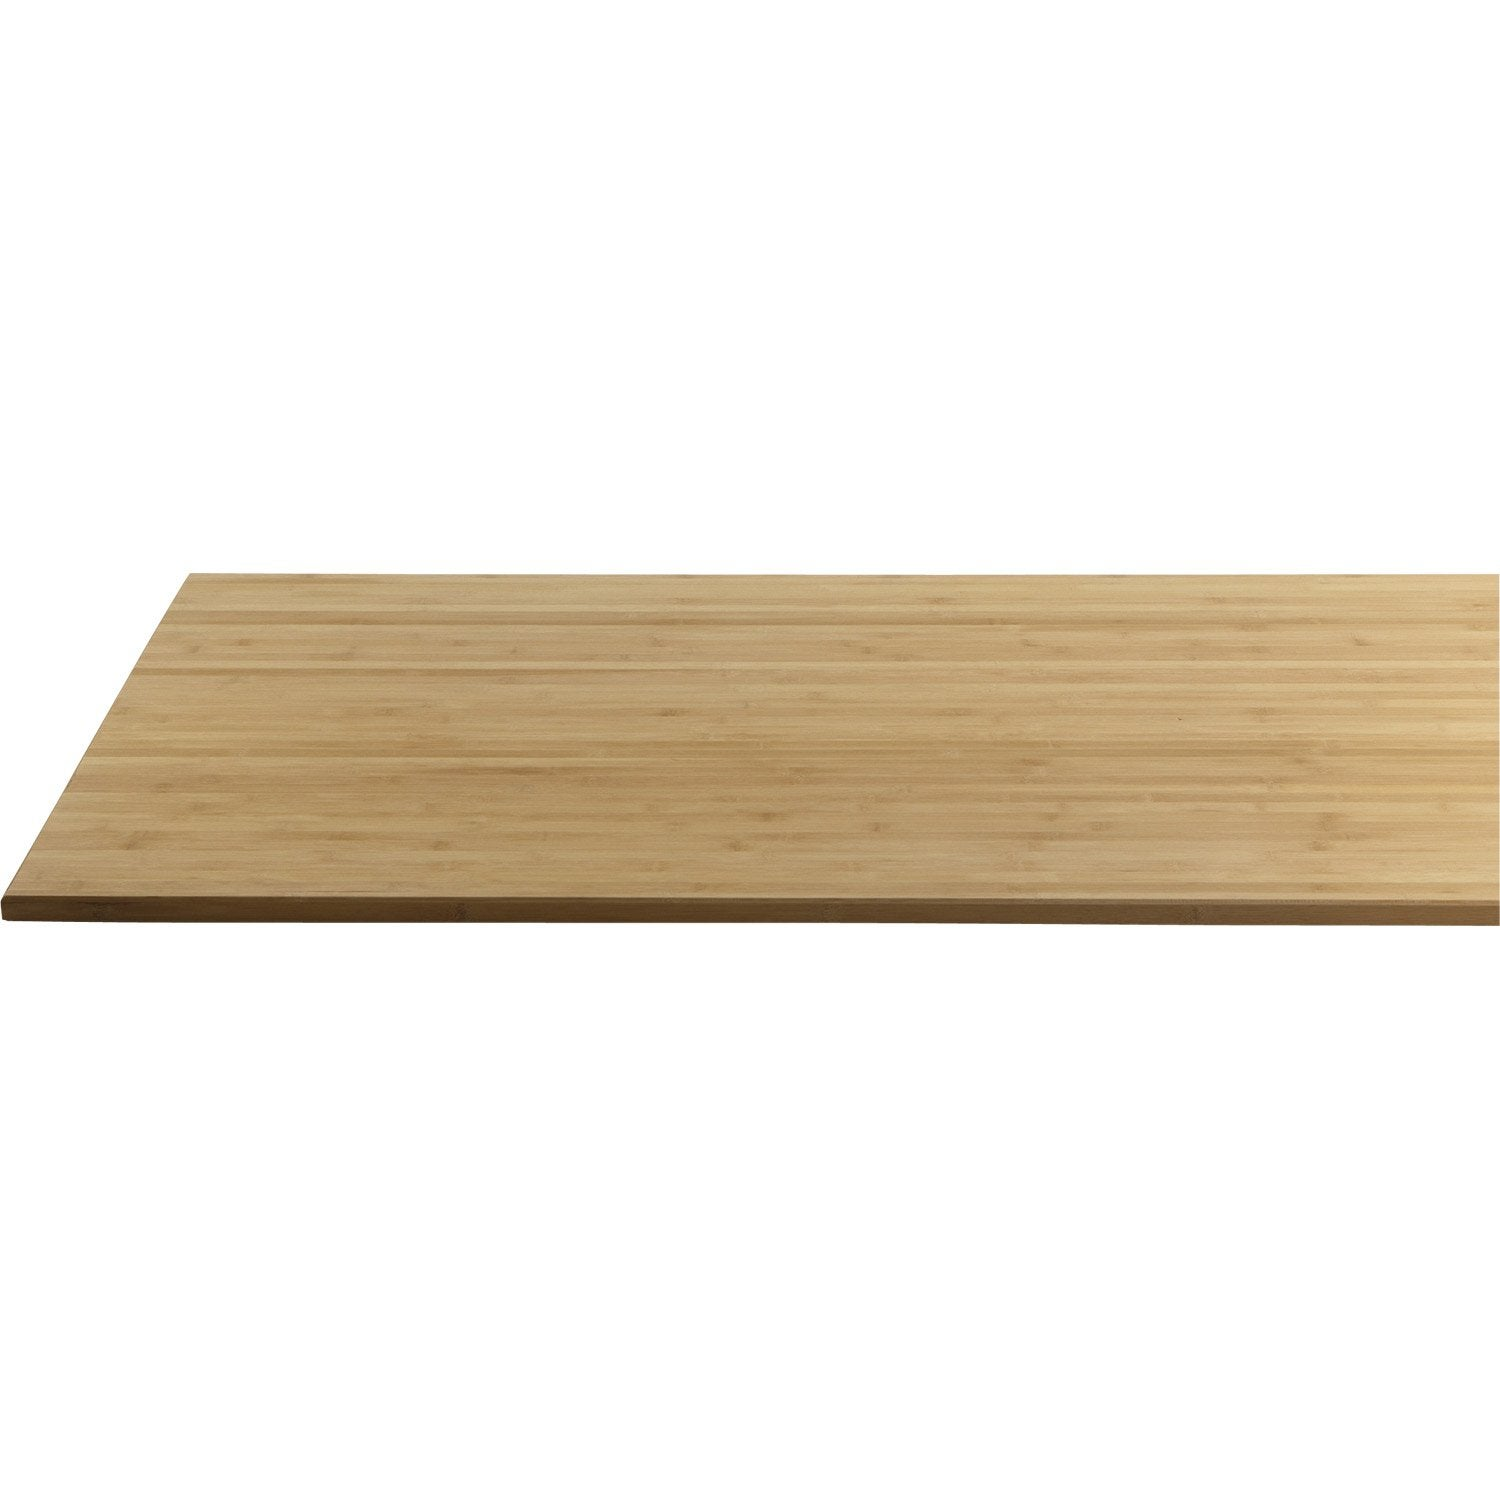 Plateau de table bambou x cm x mm for Bureau 50 cm de largeur